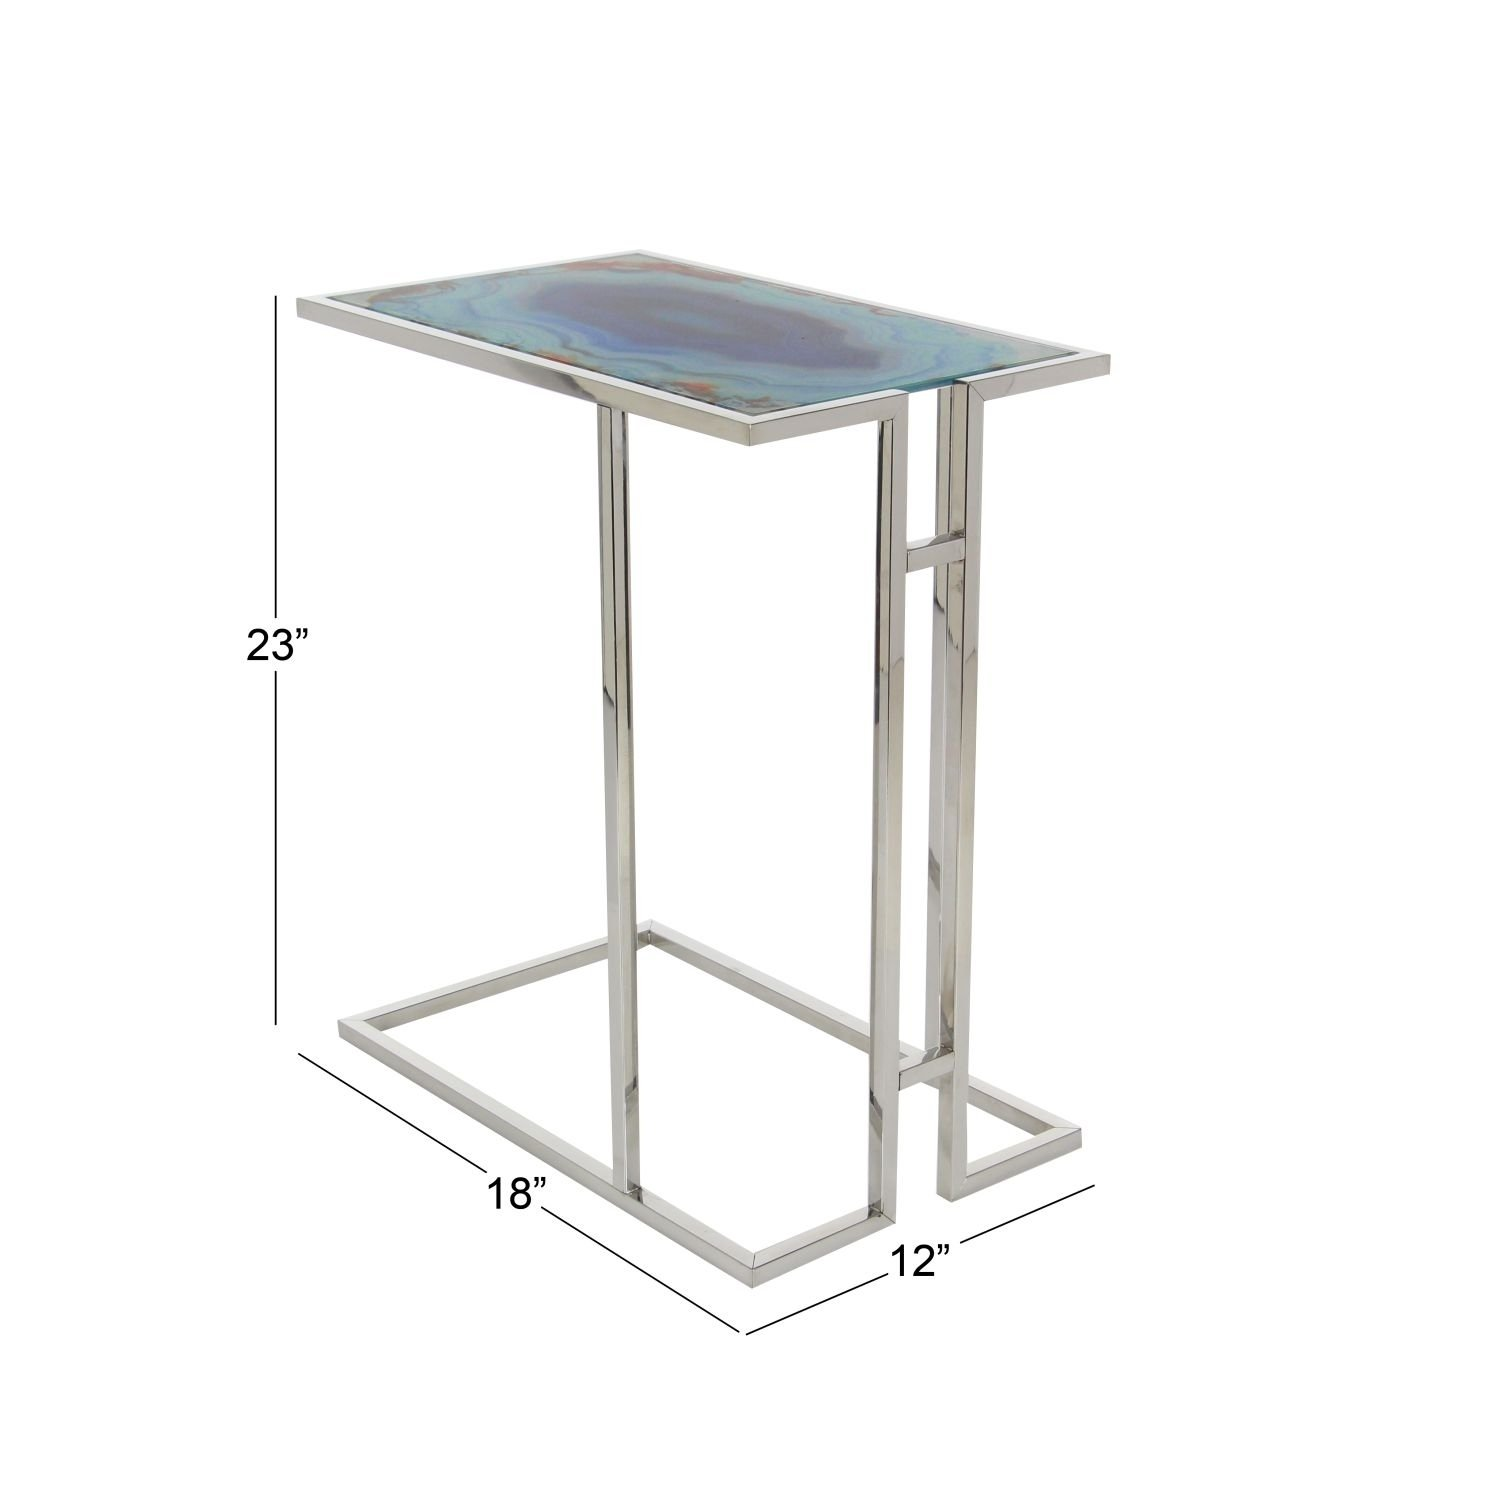 studio metal glass accent table inches wide high free shipping today shoe organizer target dining room wine rack diy bar jcpenney rugs clearance small round lamp tan plastic